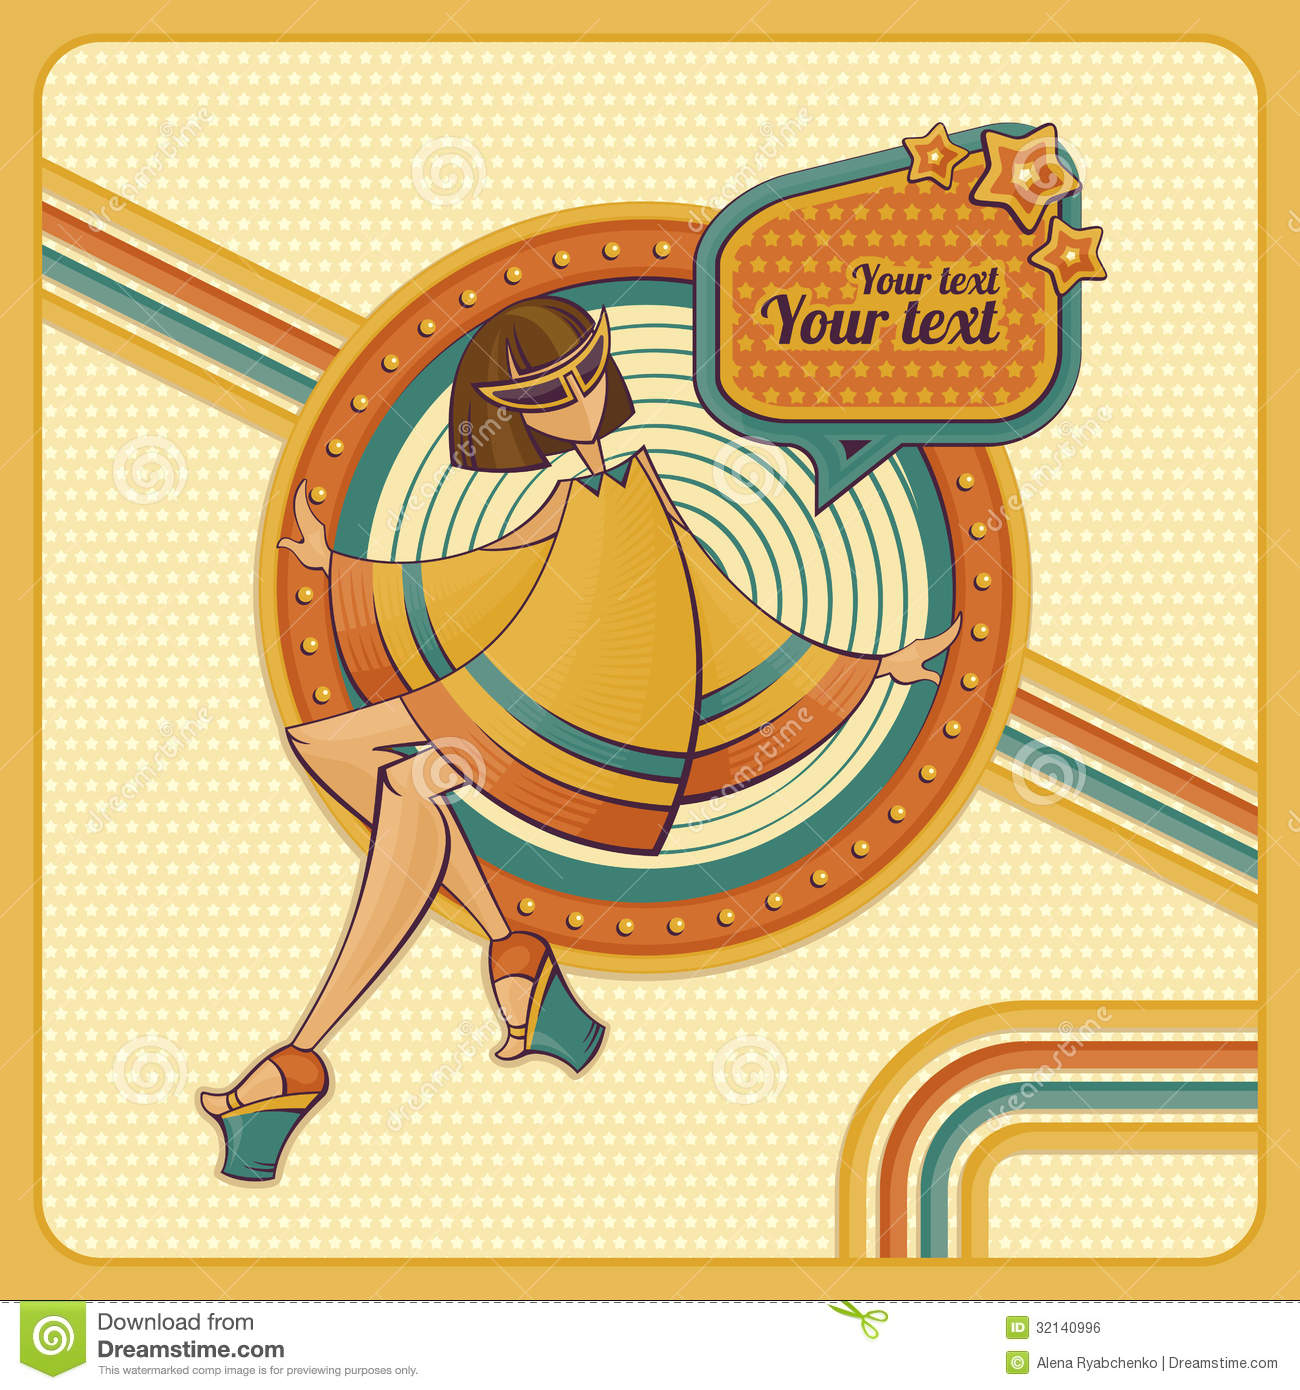 Retro Beach Illustration Royalty Free Stock Photo: Card With Girl In Retro Style Royalty Free Stock Image